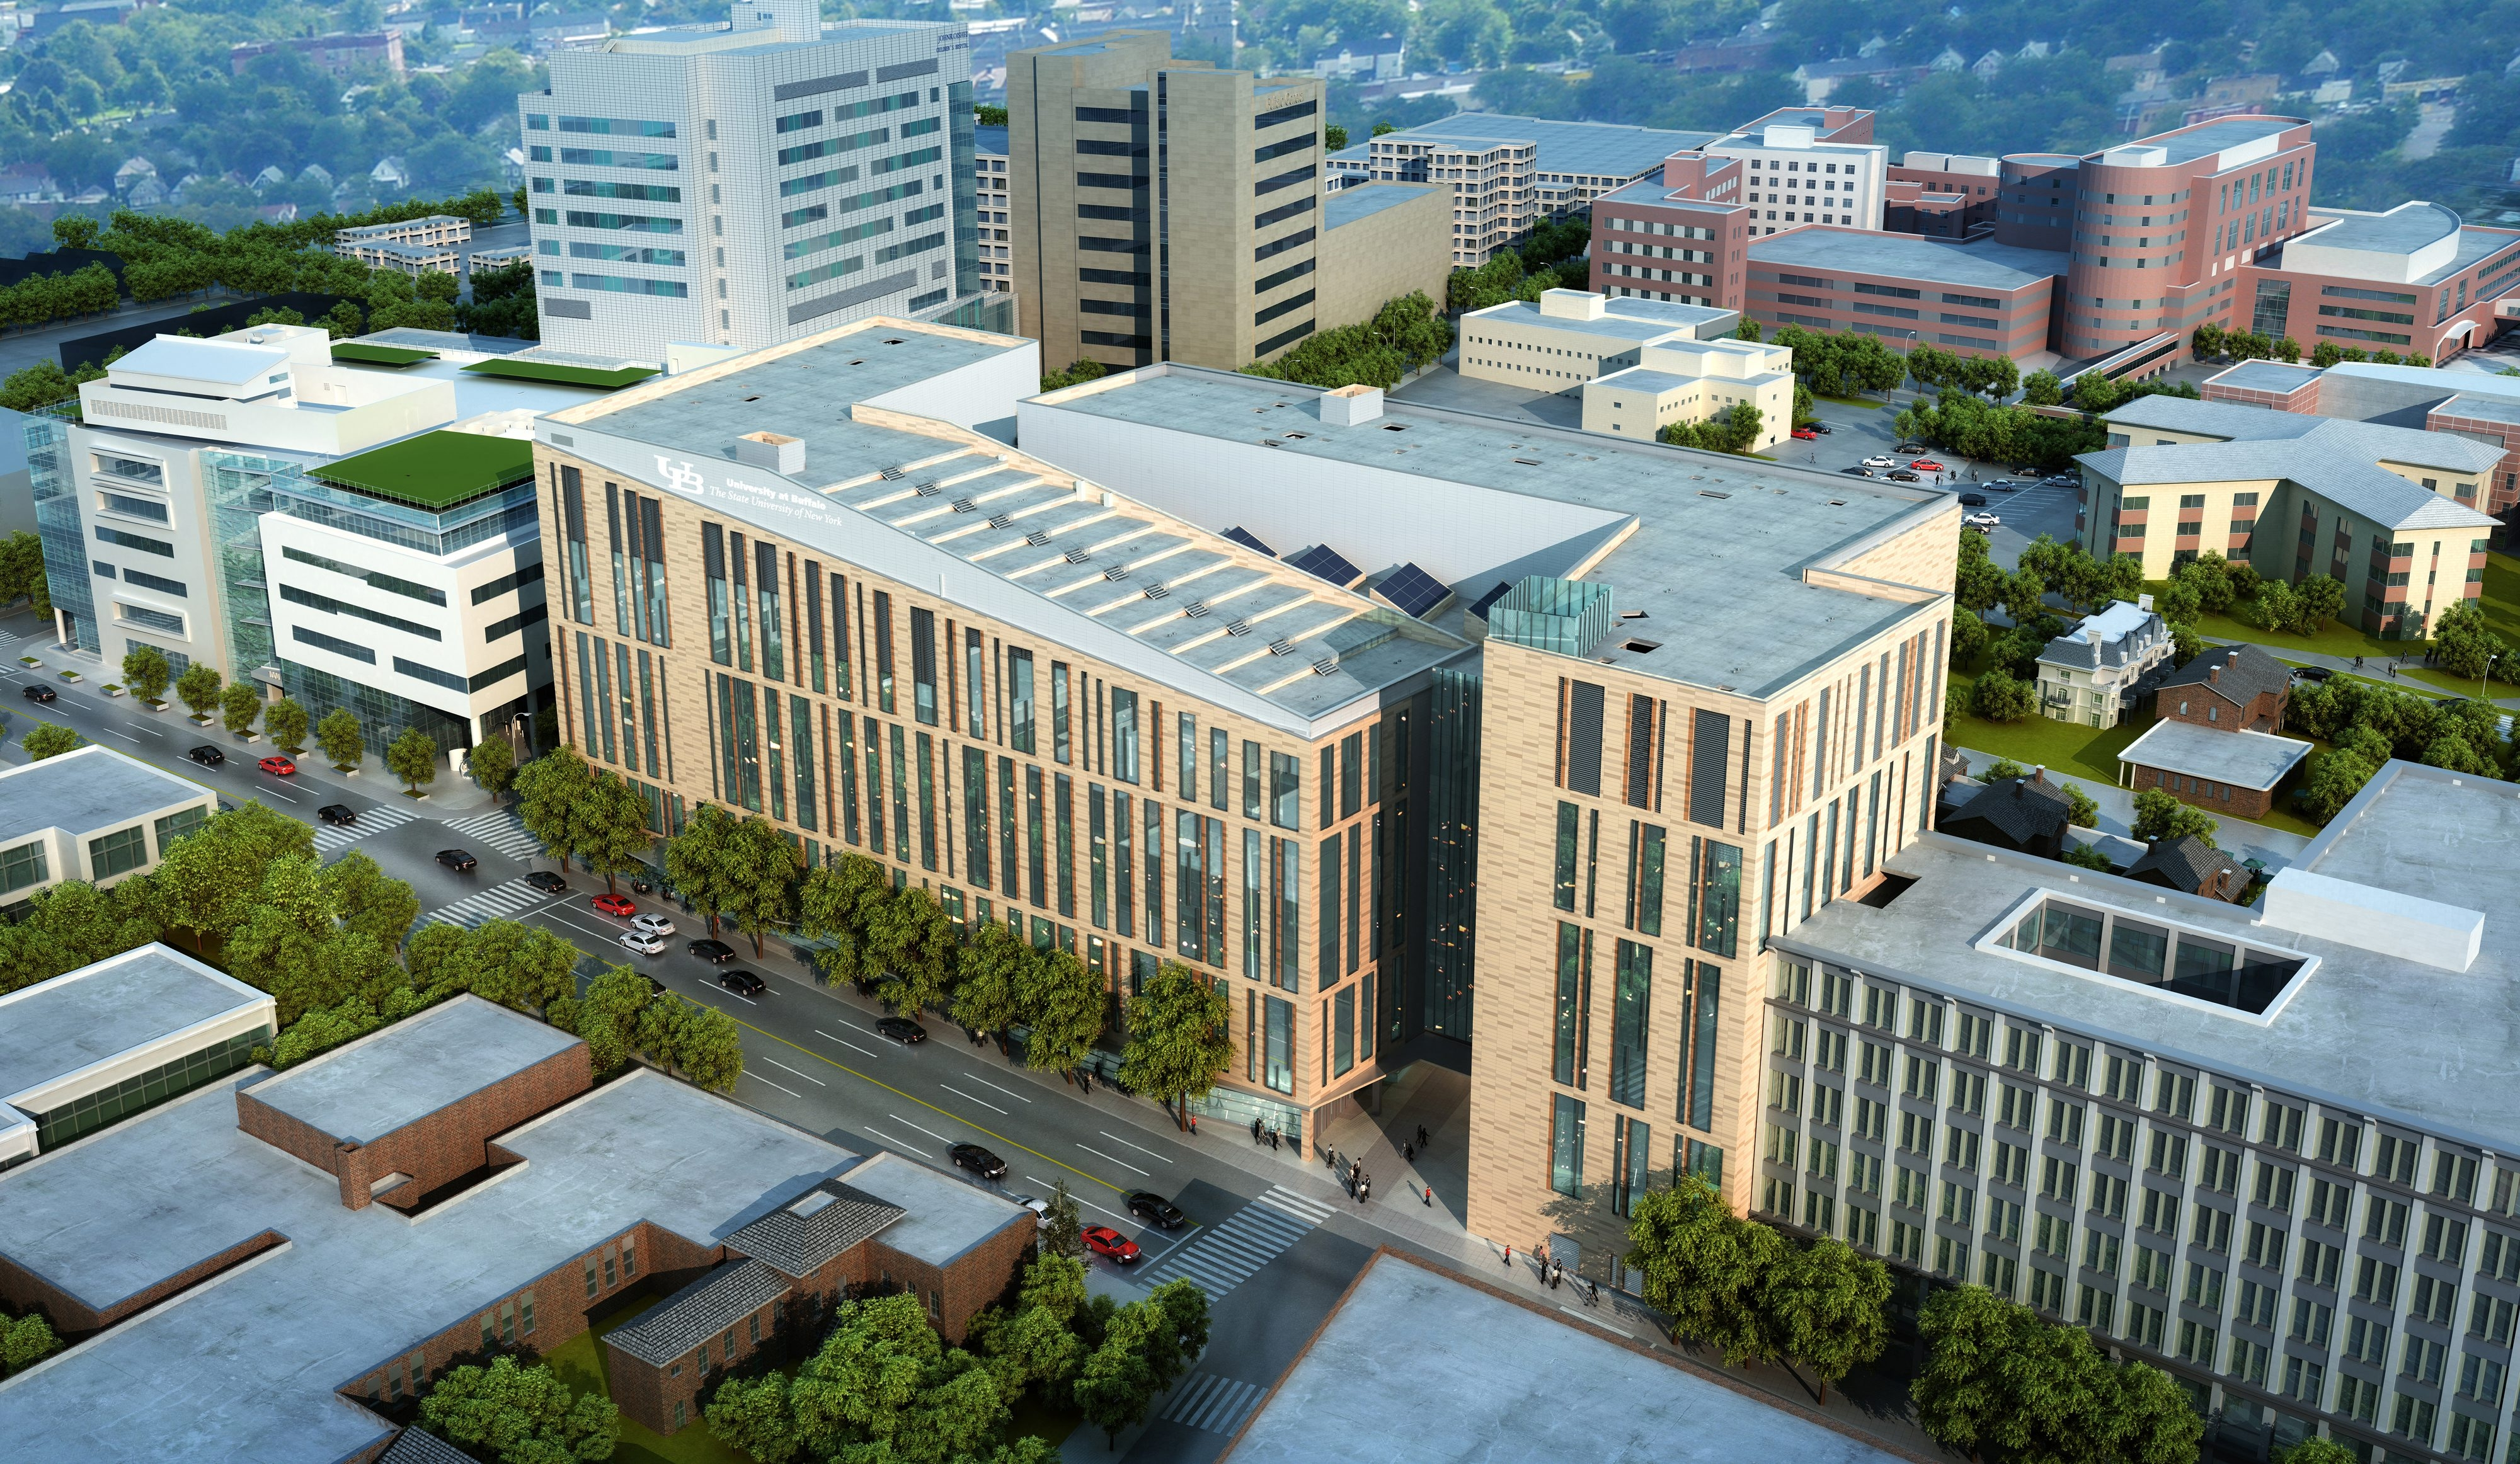 An artist rending shows an aerial view of the new UB Medical School to be built on the Buffalo Niagara Medical Campus.